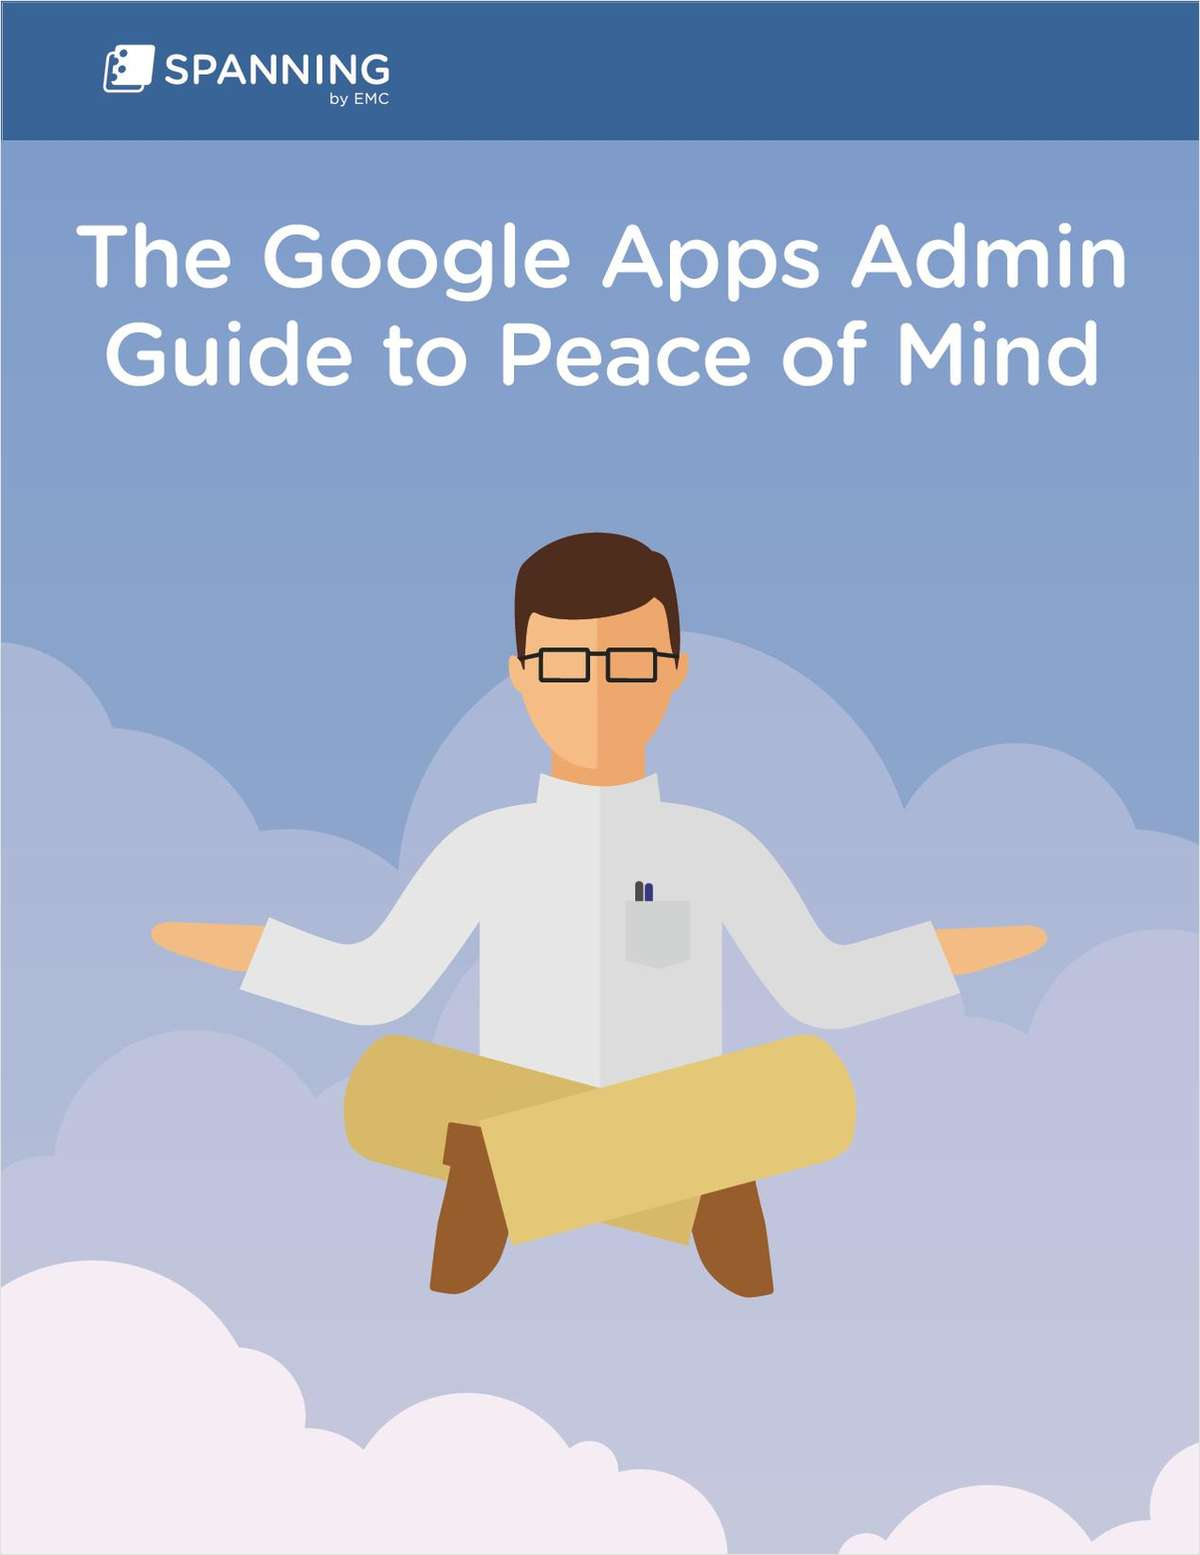 Google Apps Admins: Get Peace of Mind